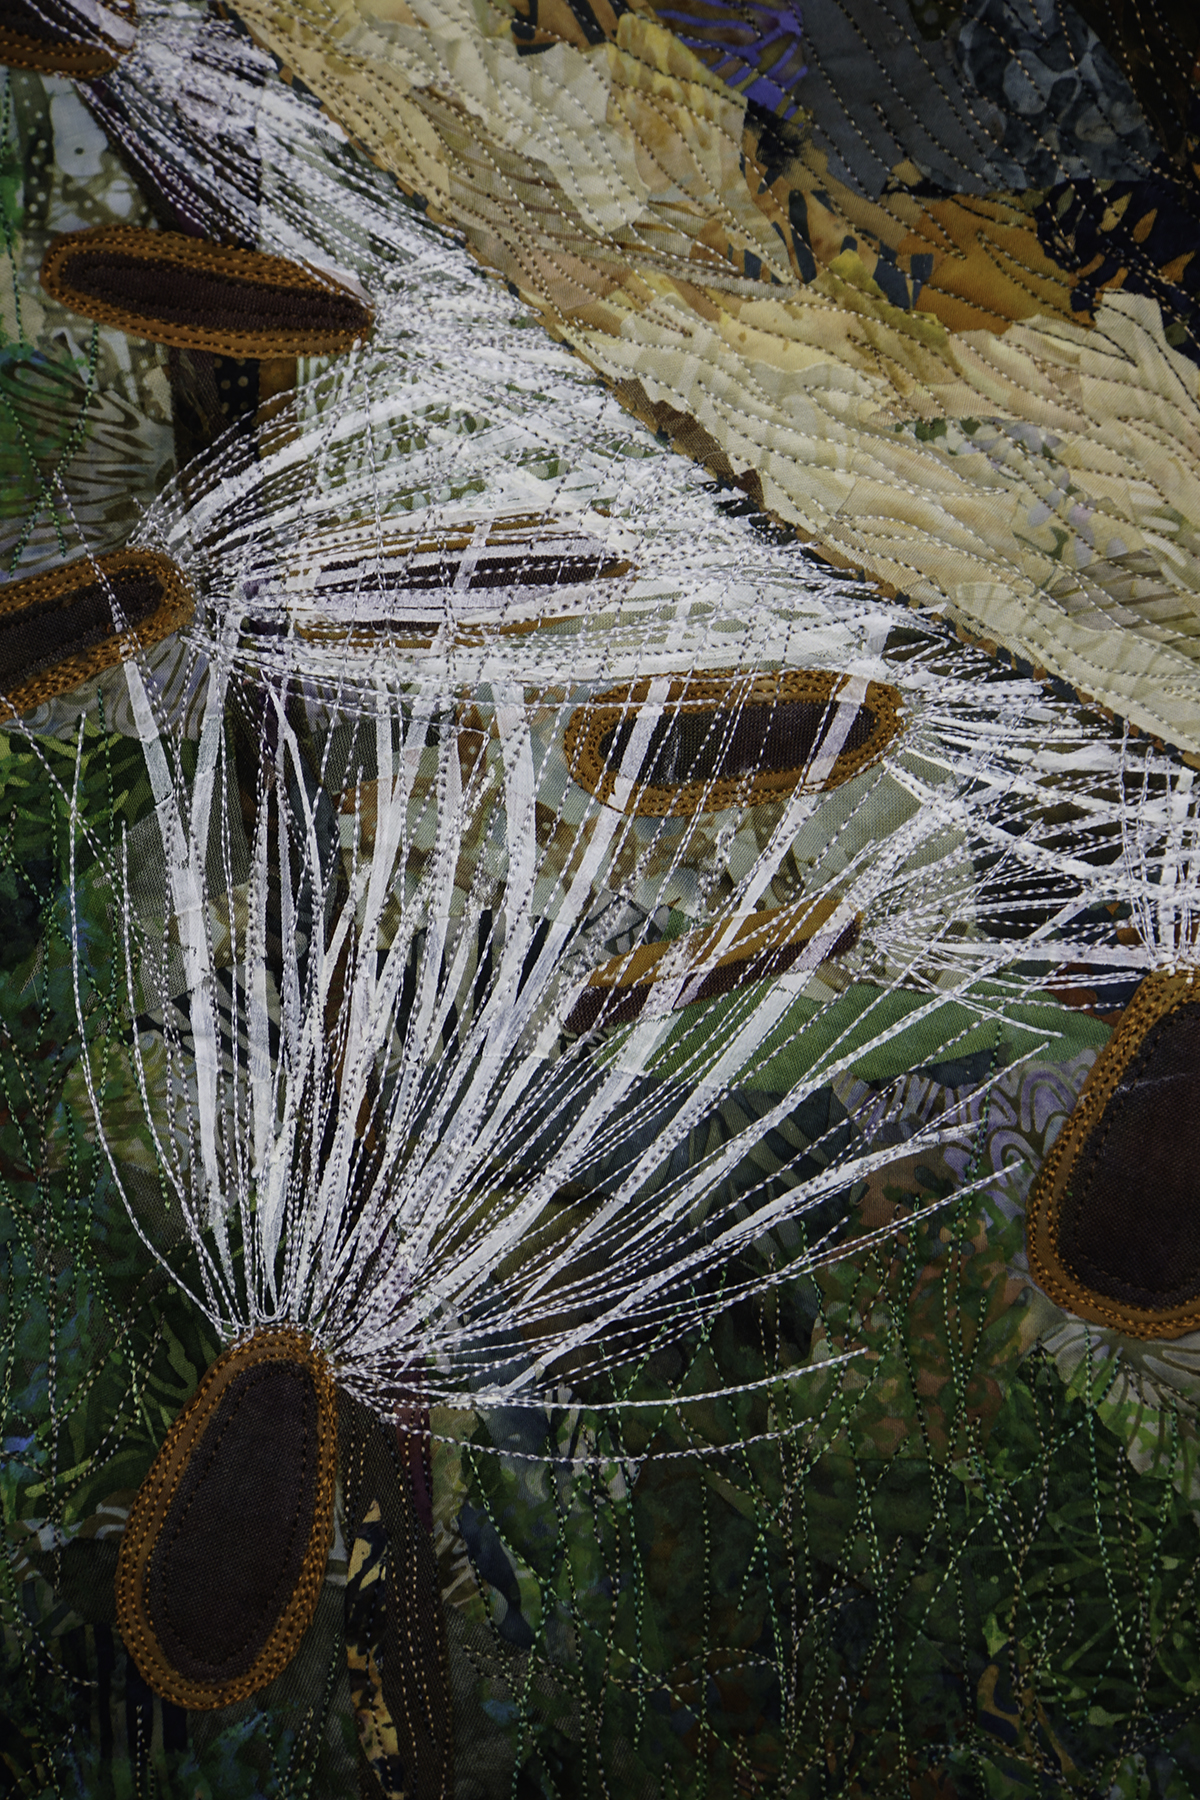 Milkweed pod, seeds and silks detail